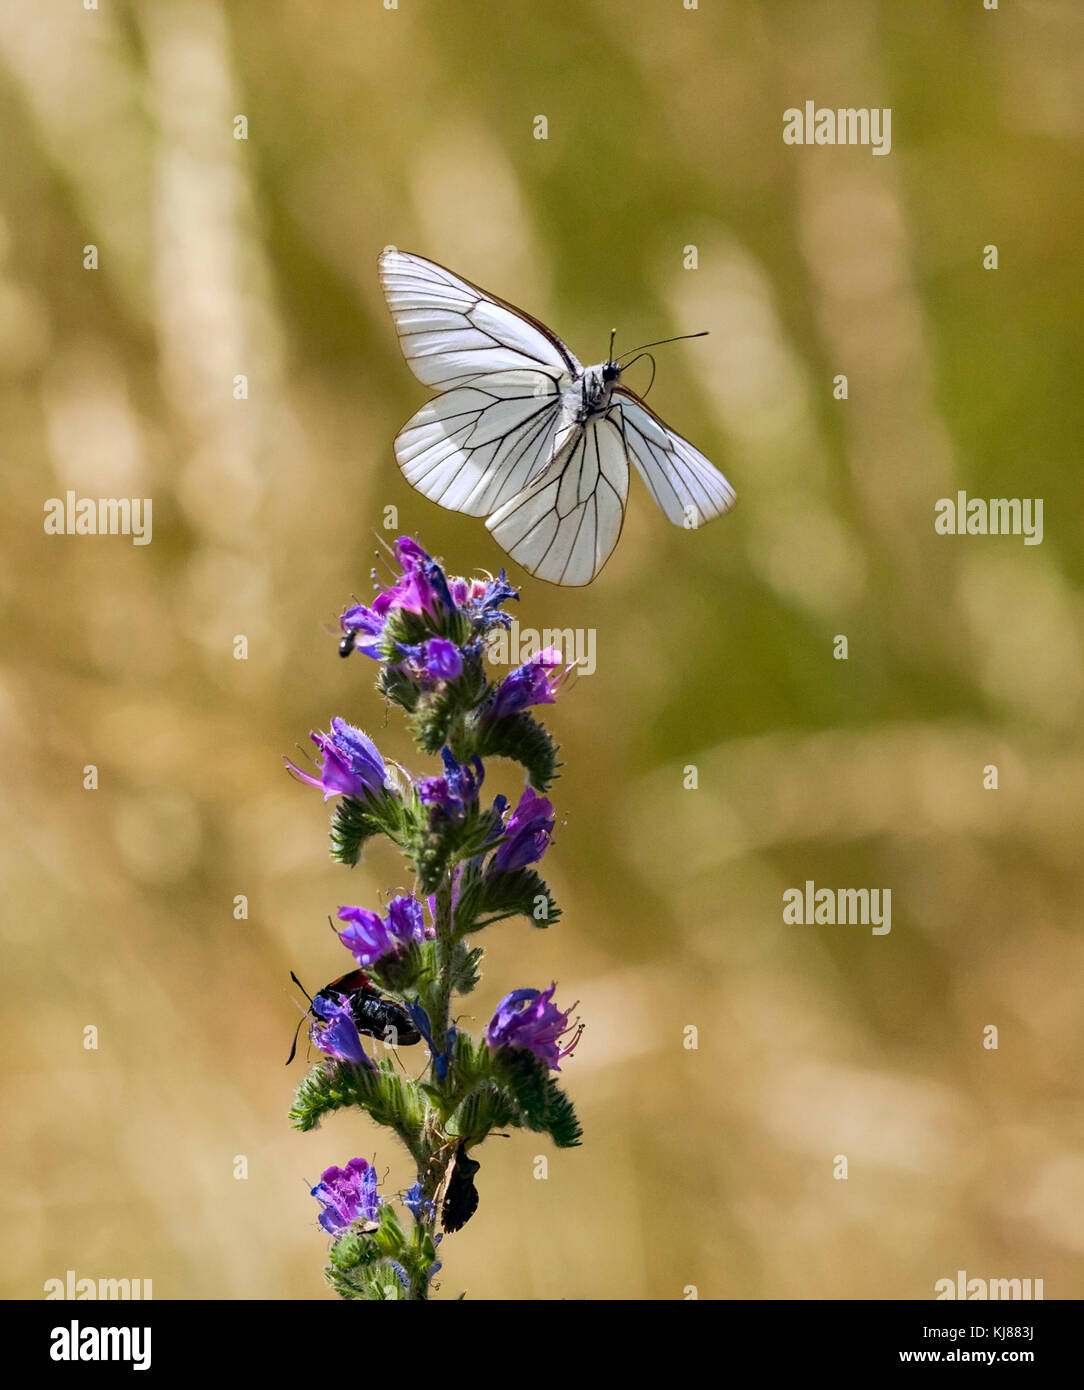 Black-veined White butterfly Aporia crataegi in flight seen from the underside over a flower head in central Spain - Stock Image